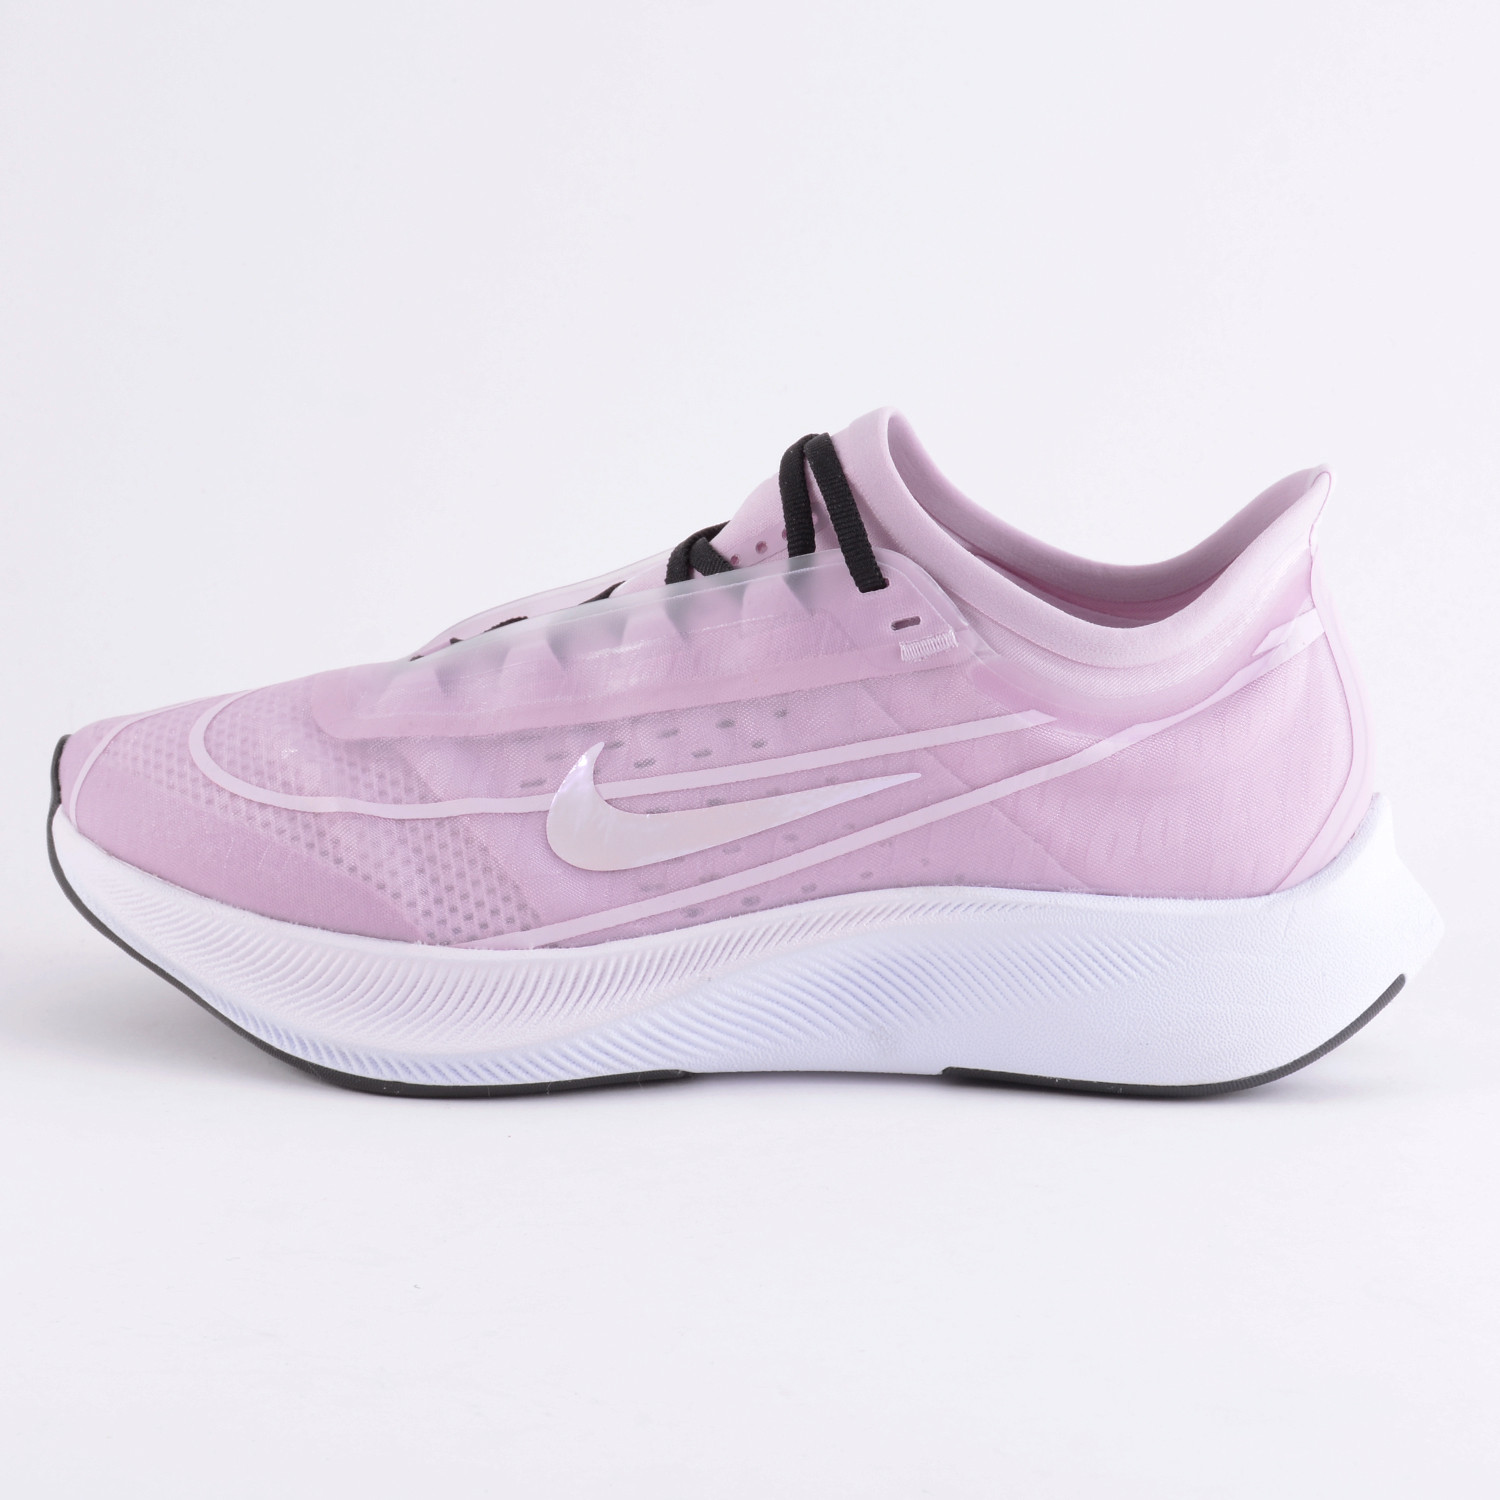 Nike Zoom Fly Nike WMNS ZOOM FLY 3 ICED LILAC/LIGHT VIOLET-WHITE-BLACK AT8241-501